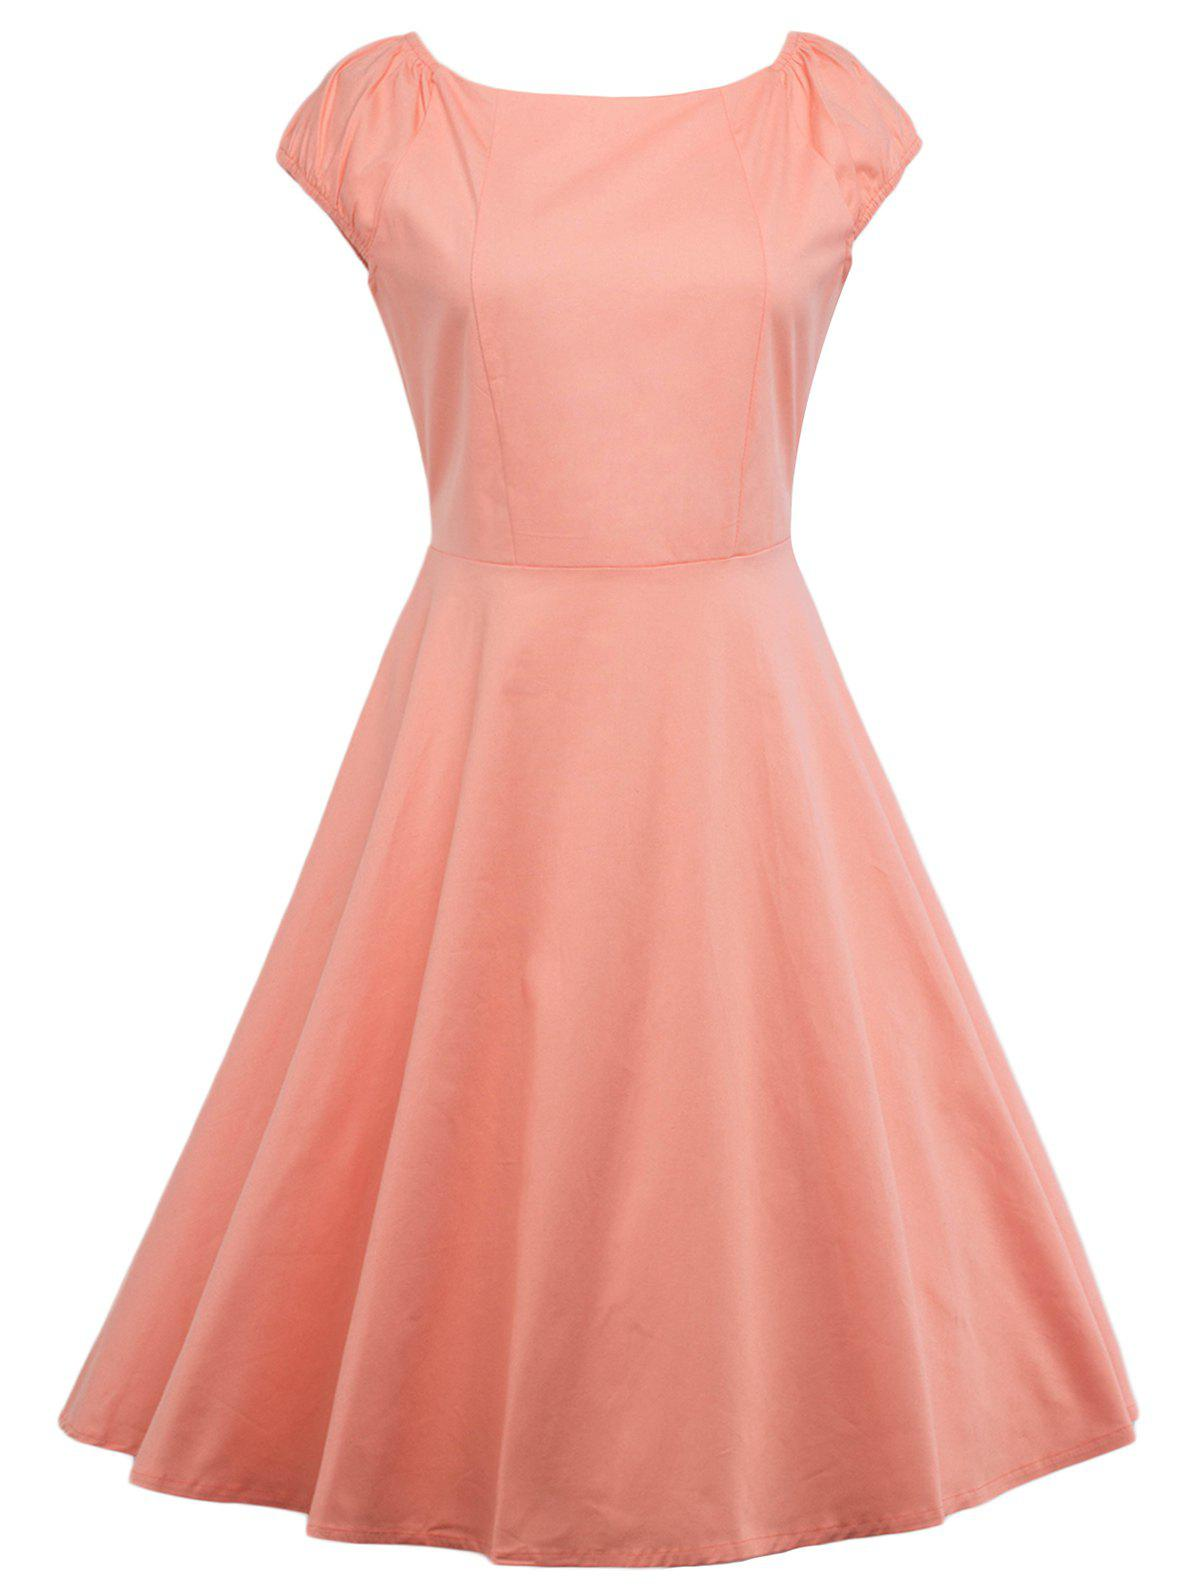 Robe de Bal Simple Évasée à Manches Cape - Orange Rose M